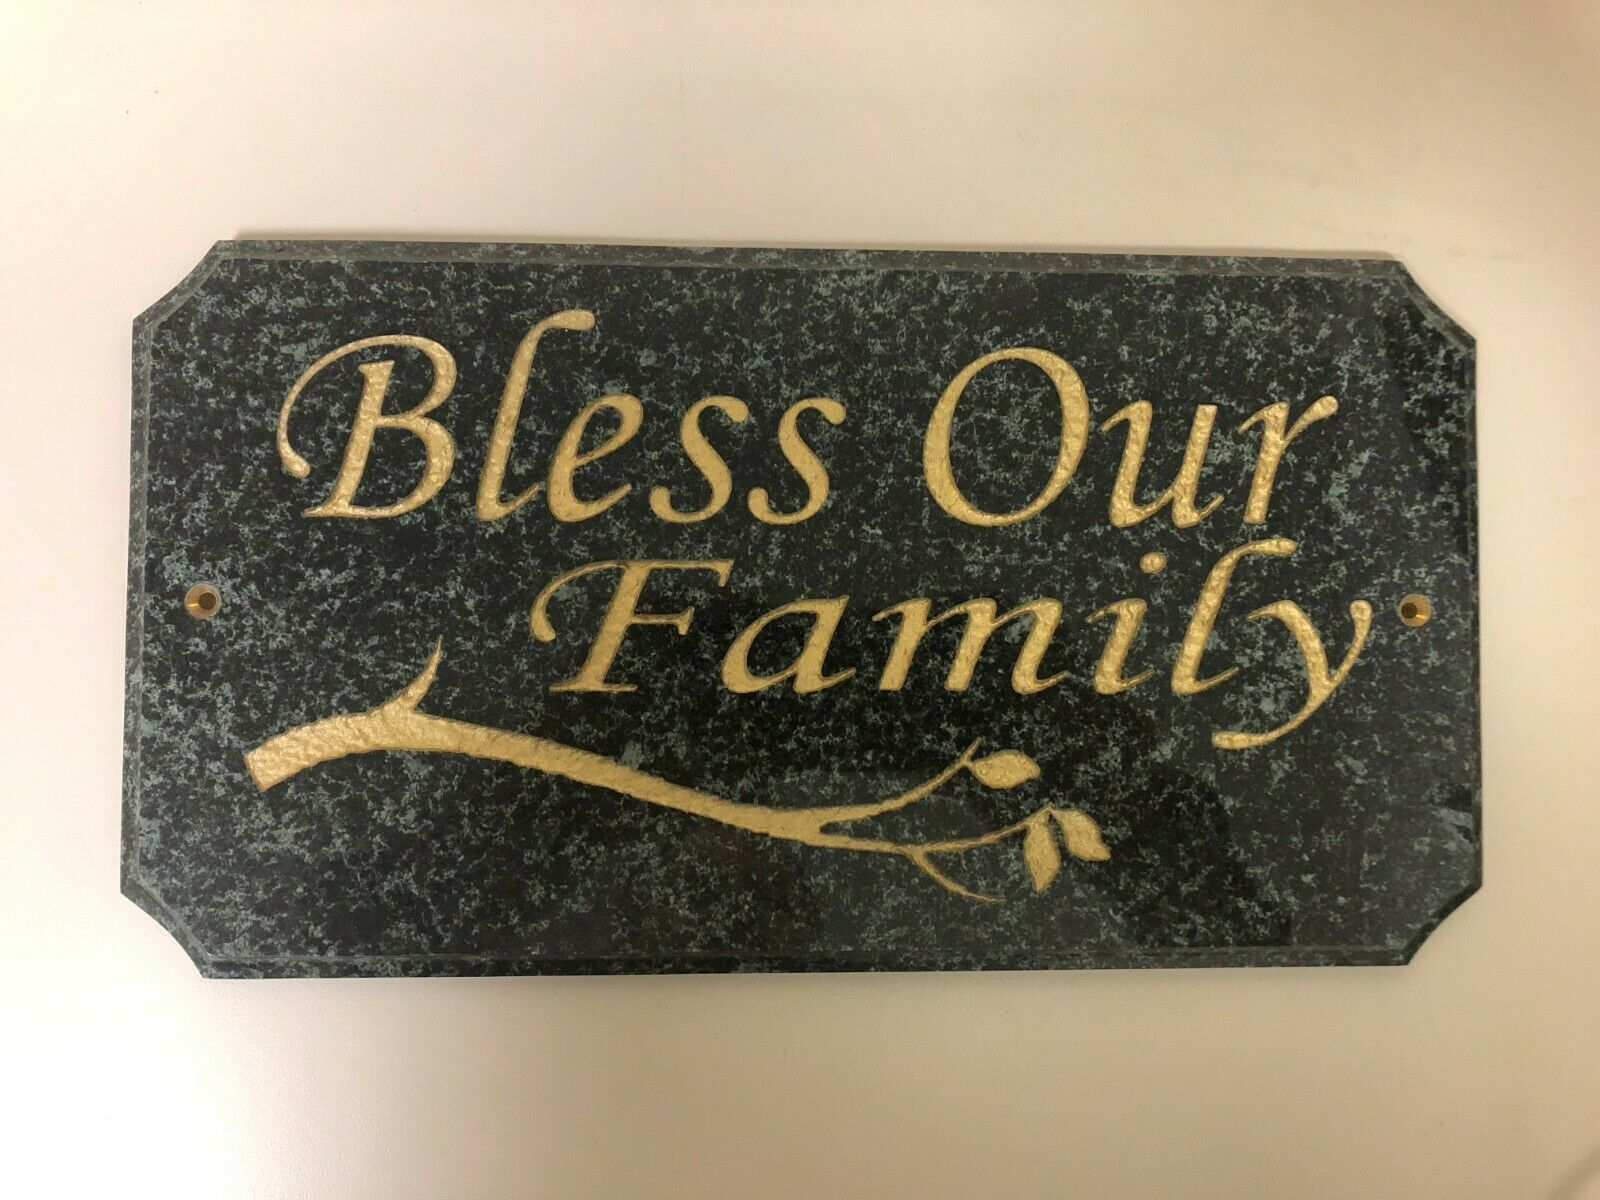 Bless Our Family  Engraved Granite Wall Plaque, Jade Granite with Gold Letters